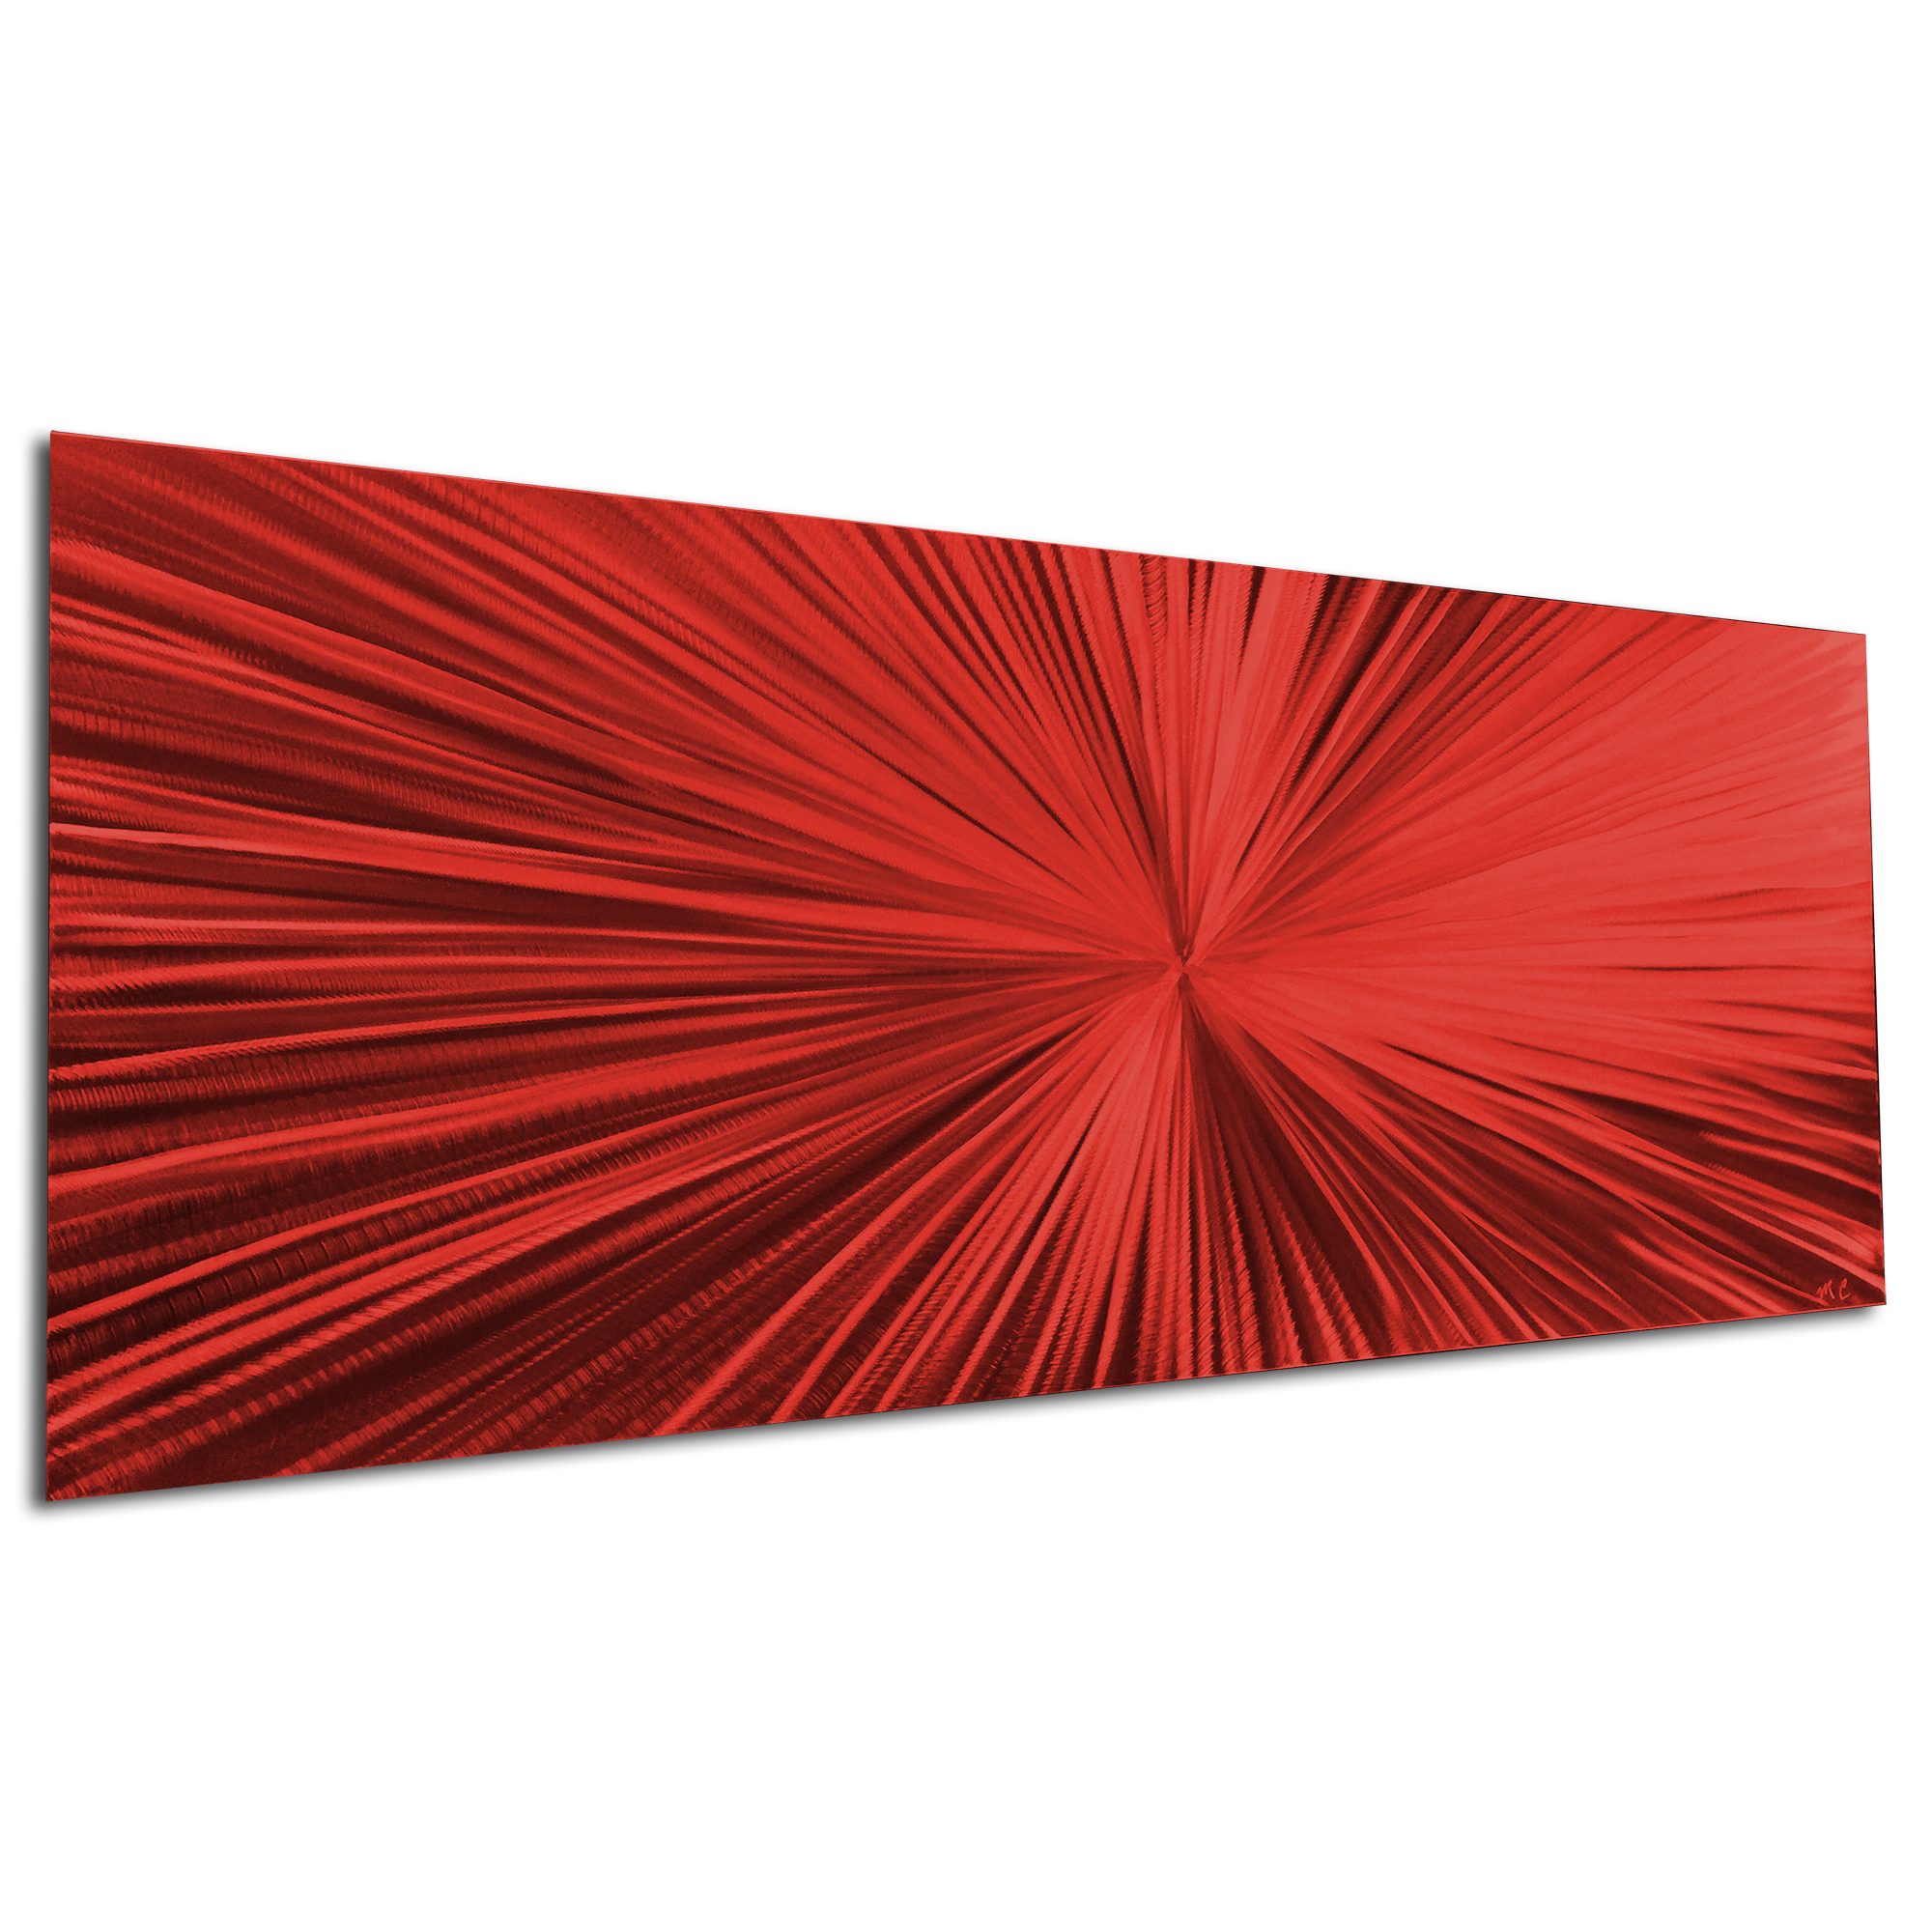 Starburst Red by Helena Martin - Original Abstract Art on Ground and Painted Metal - Image 3